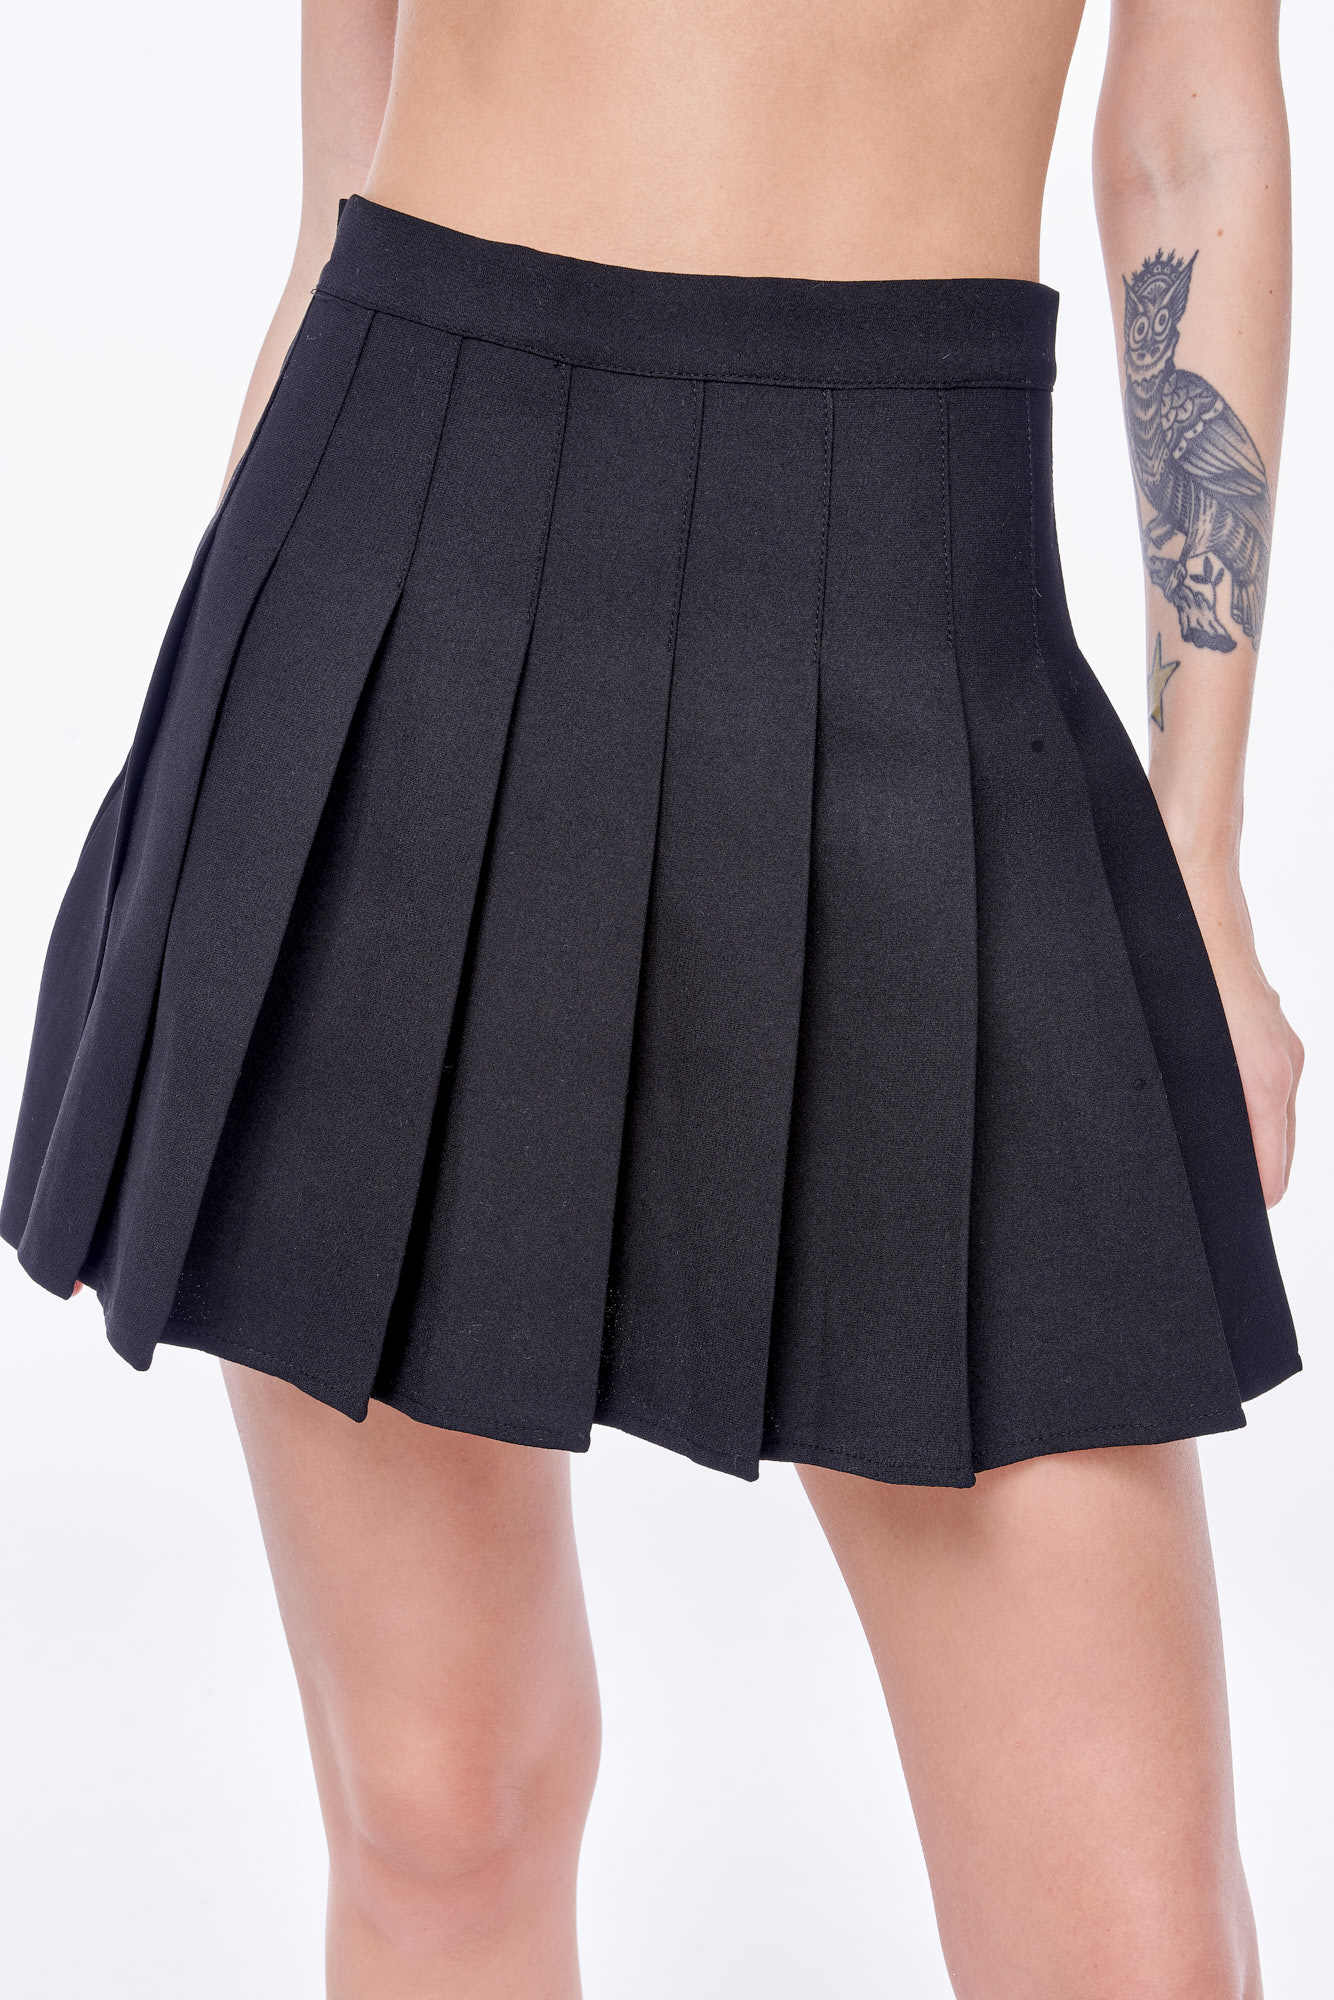 Юбка Feelz Skirt back 2school, Черный